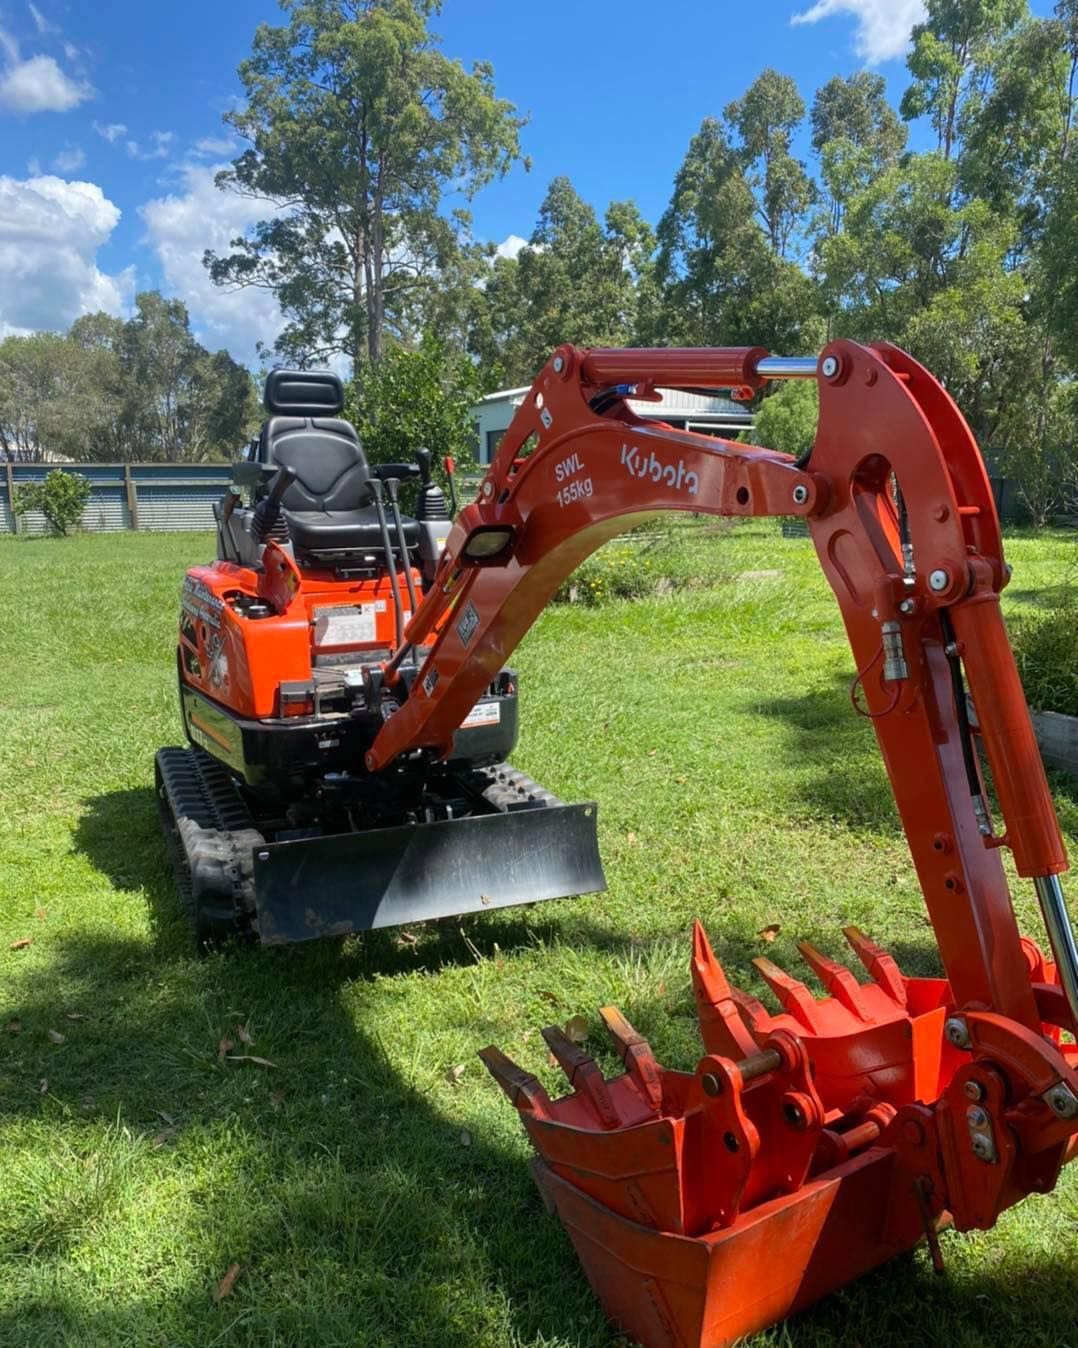 Kubota excavator on a trailer for dry hire and wet hire based in Caboolture & Morayfield